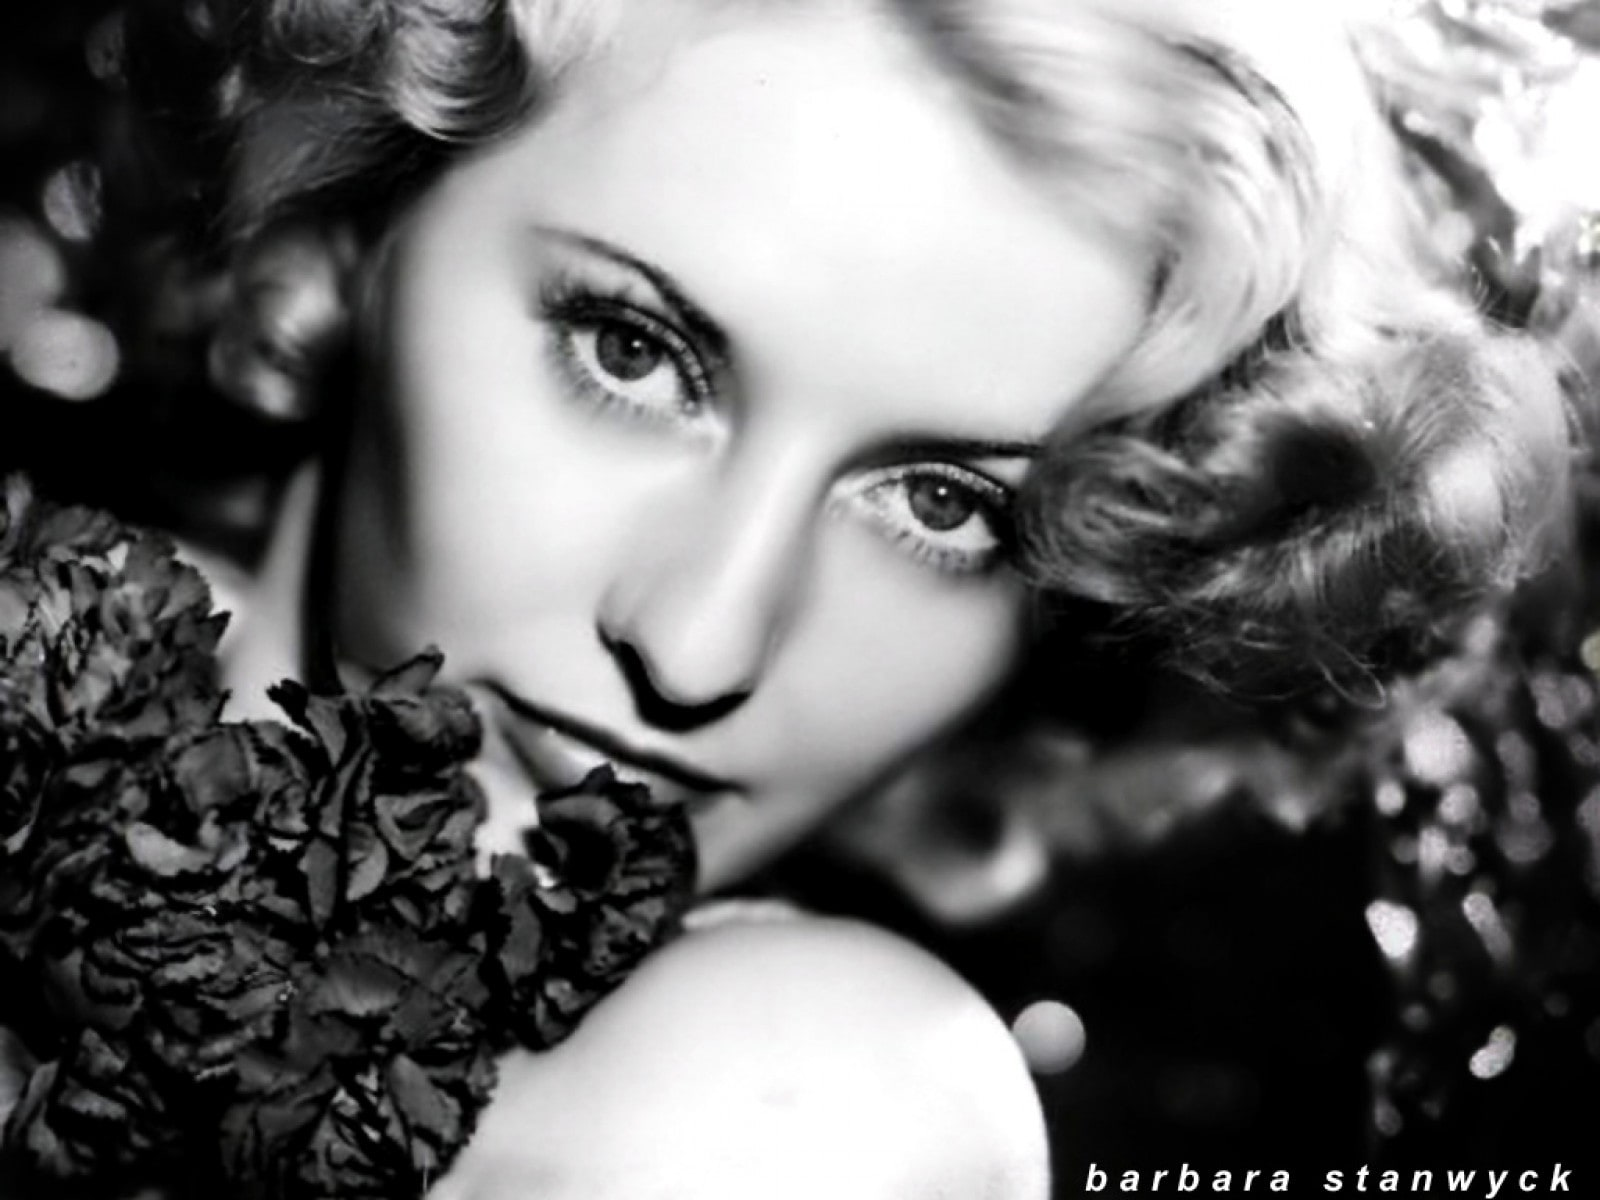 Barbara Stanwyck Wallpapers hd